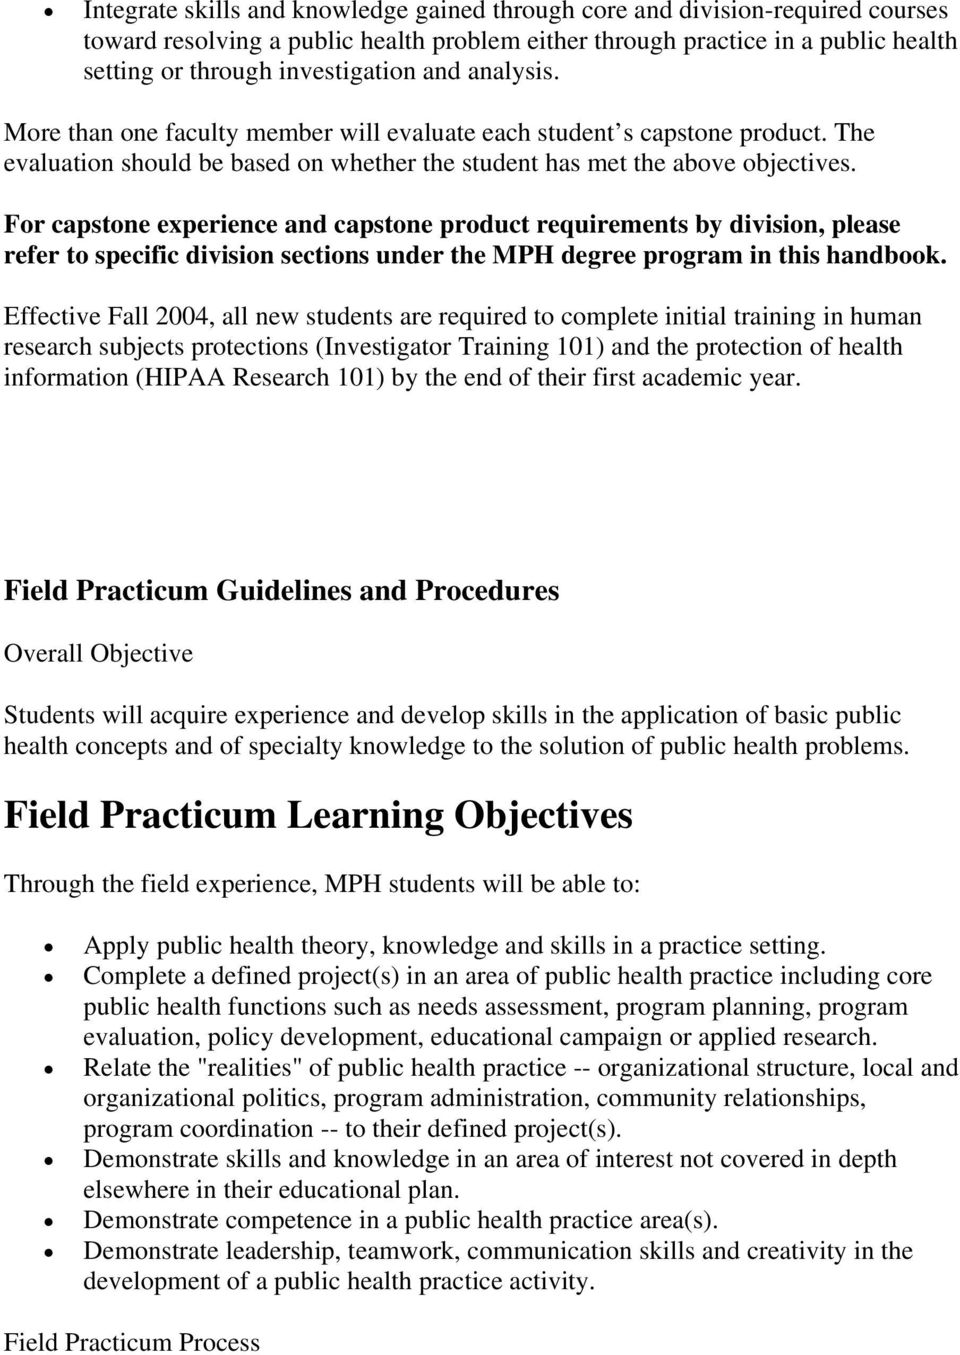 For capstone experience and capstone product requirements by division, please refer to specific division sections under the MPH degree program in this handbook.